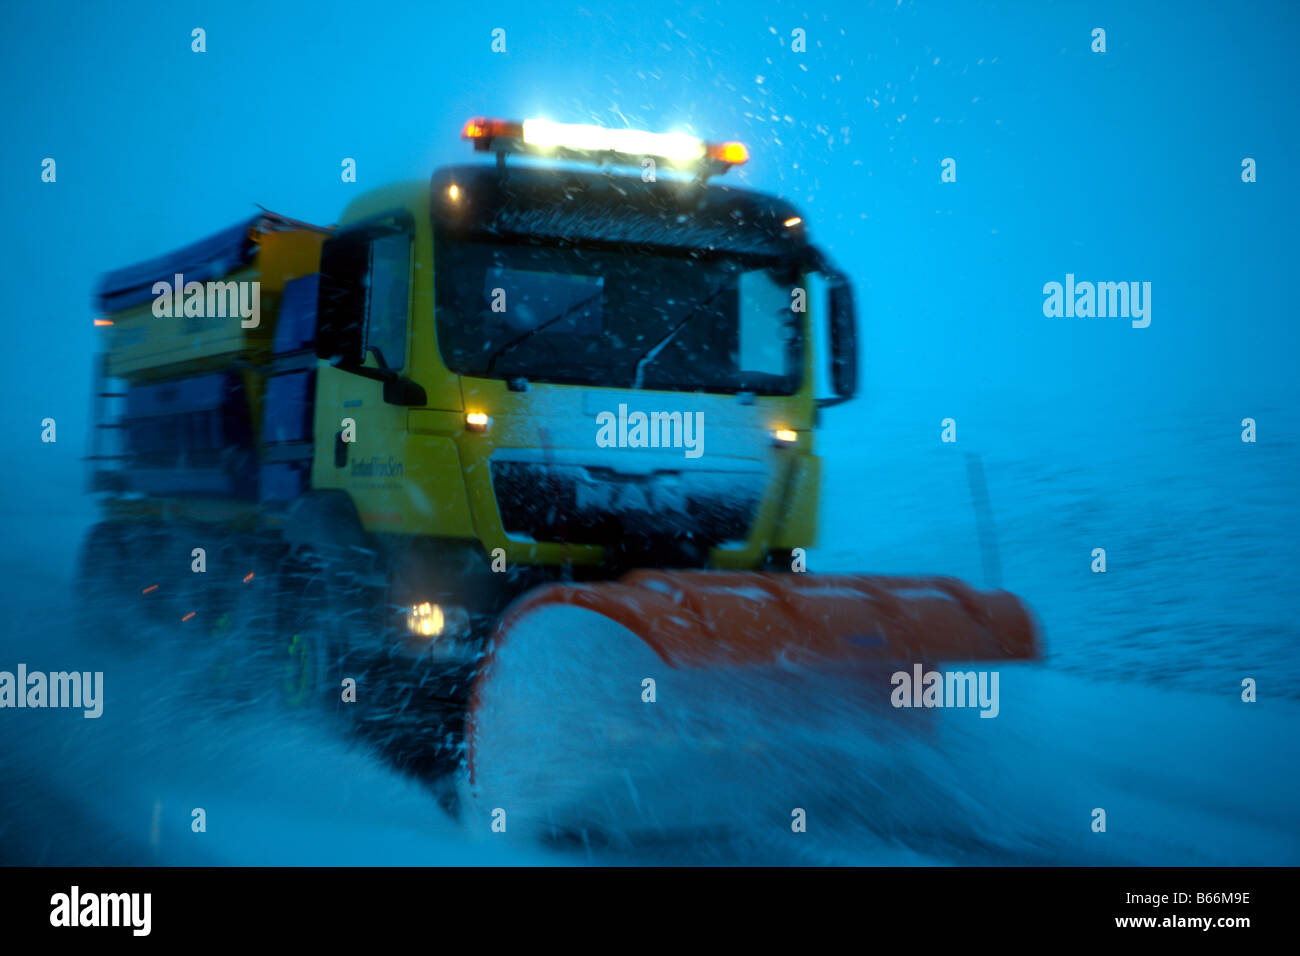 snow-plough-B66M9E.jpg